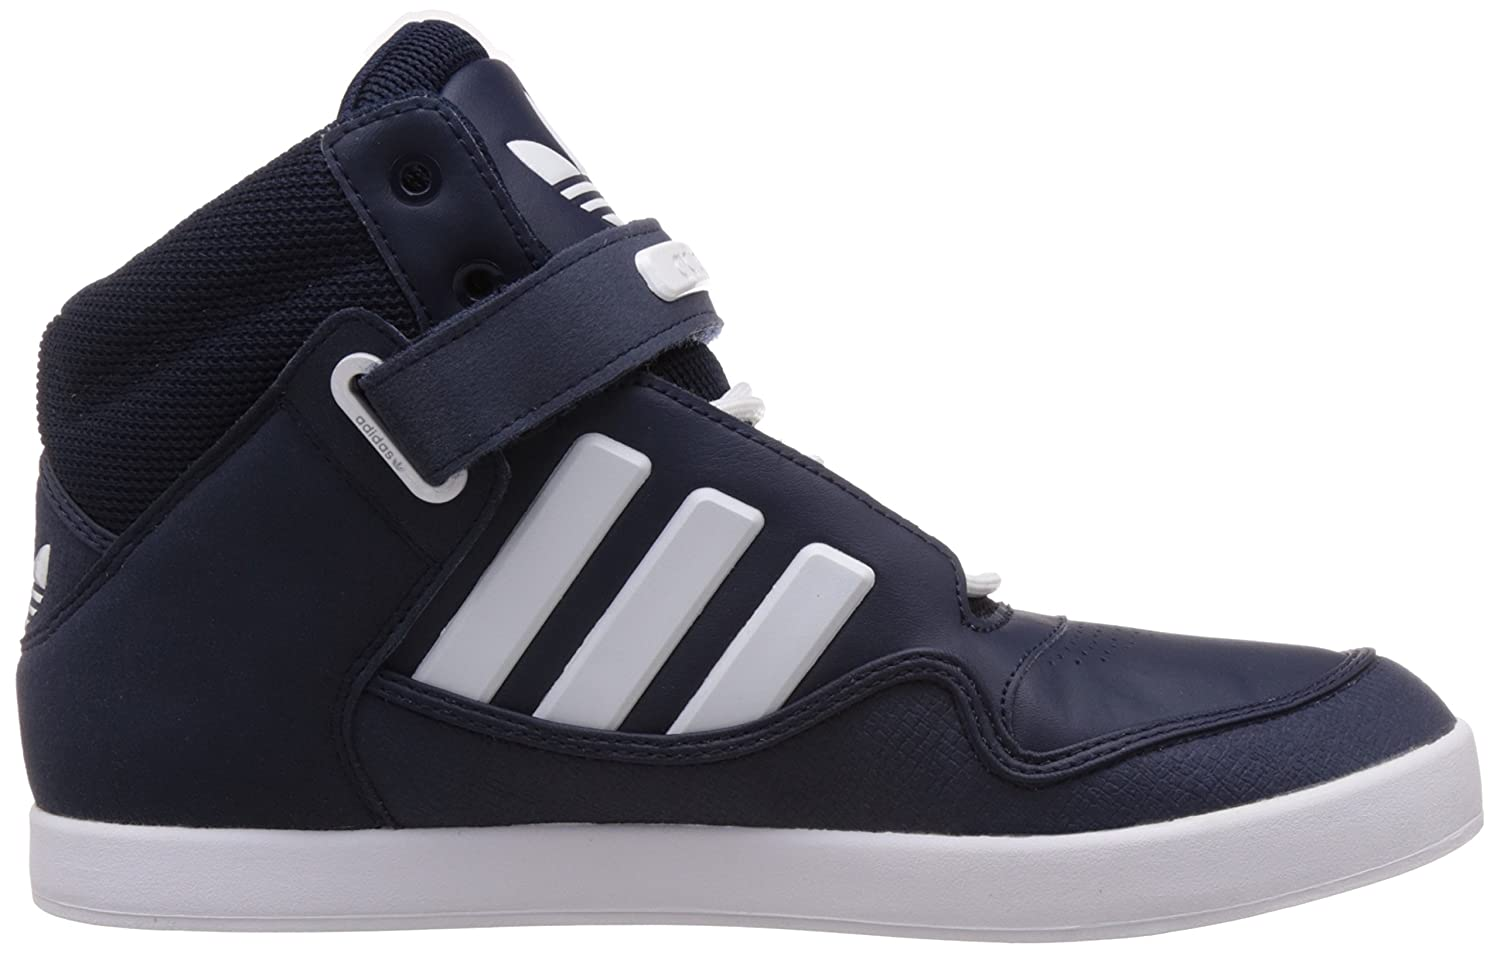 newest e6b18 eb002 adidas Originals Mens Ar 2.0 Blue and White Basketball Shoes - 8 UK Buy  Online at Low Prices in India - Amazon.in